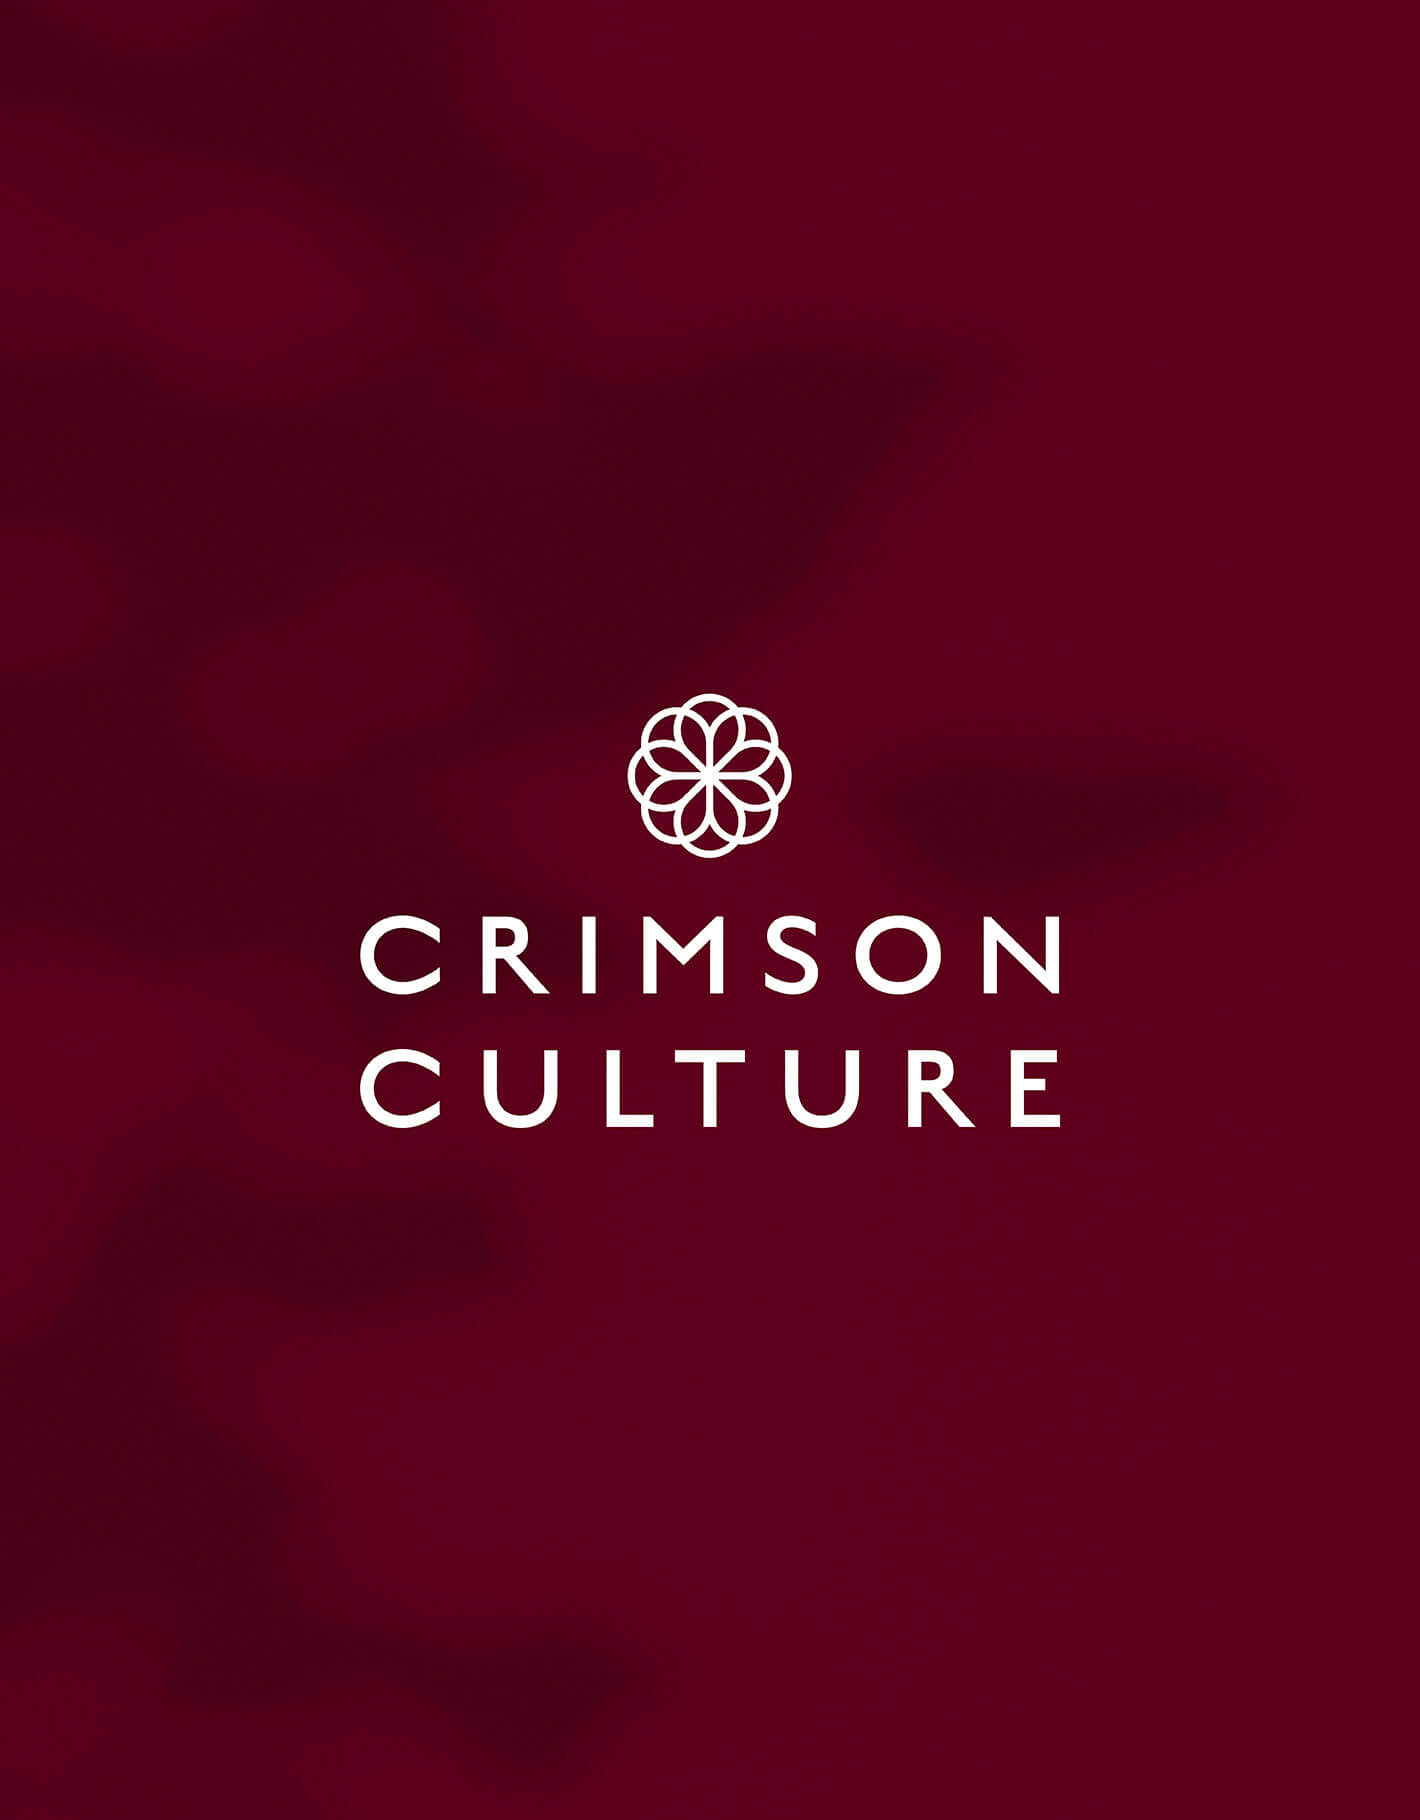 Logotype and icon for Crimson Culture candles